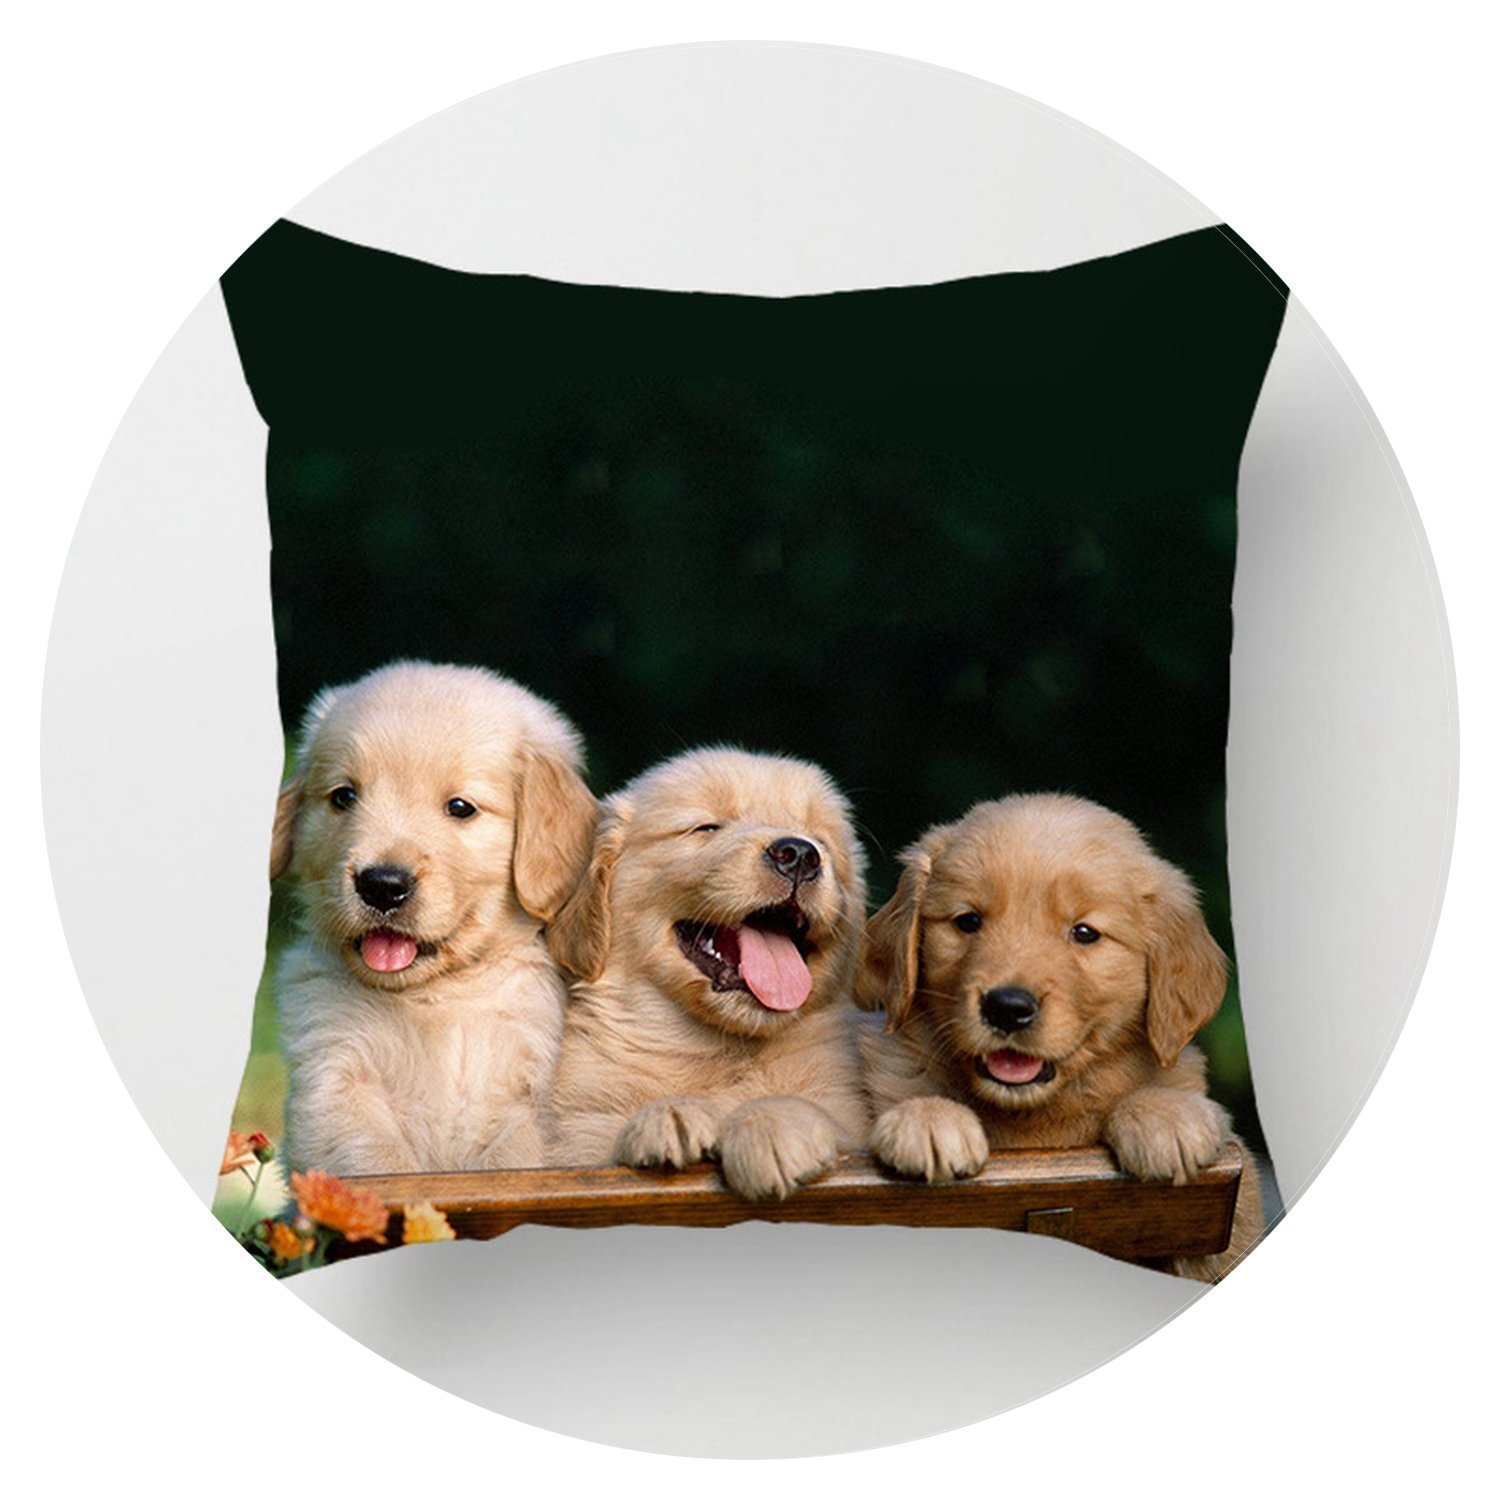 Lovely Dogs doggie series soft pillow cover comfortable home hotel 400mm400mm pillow case,dog pc002,400400mm